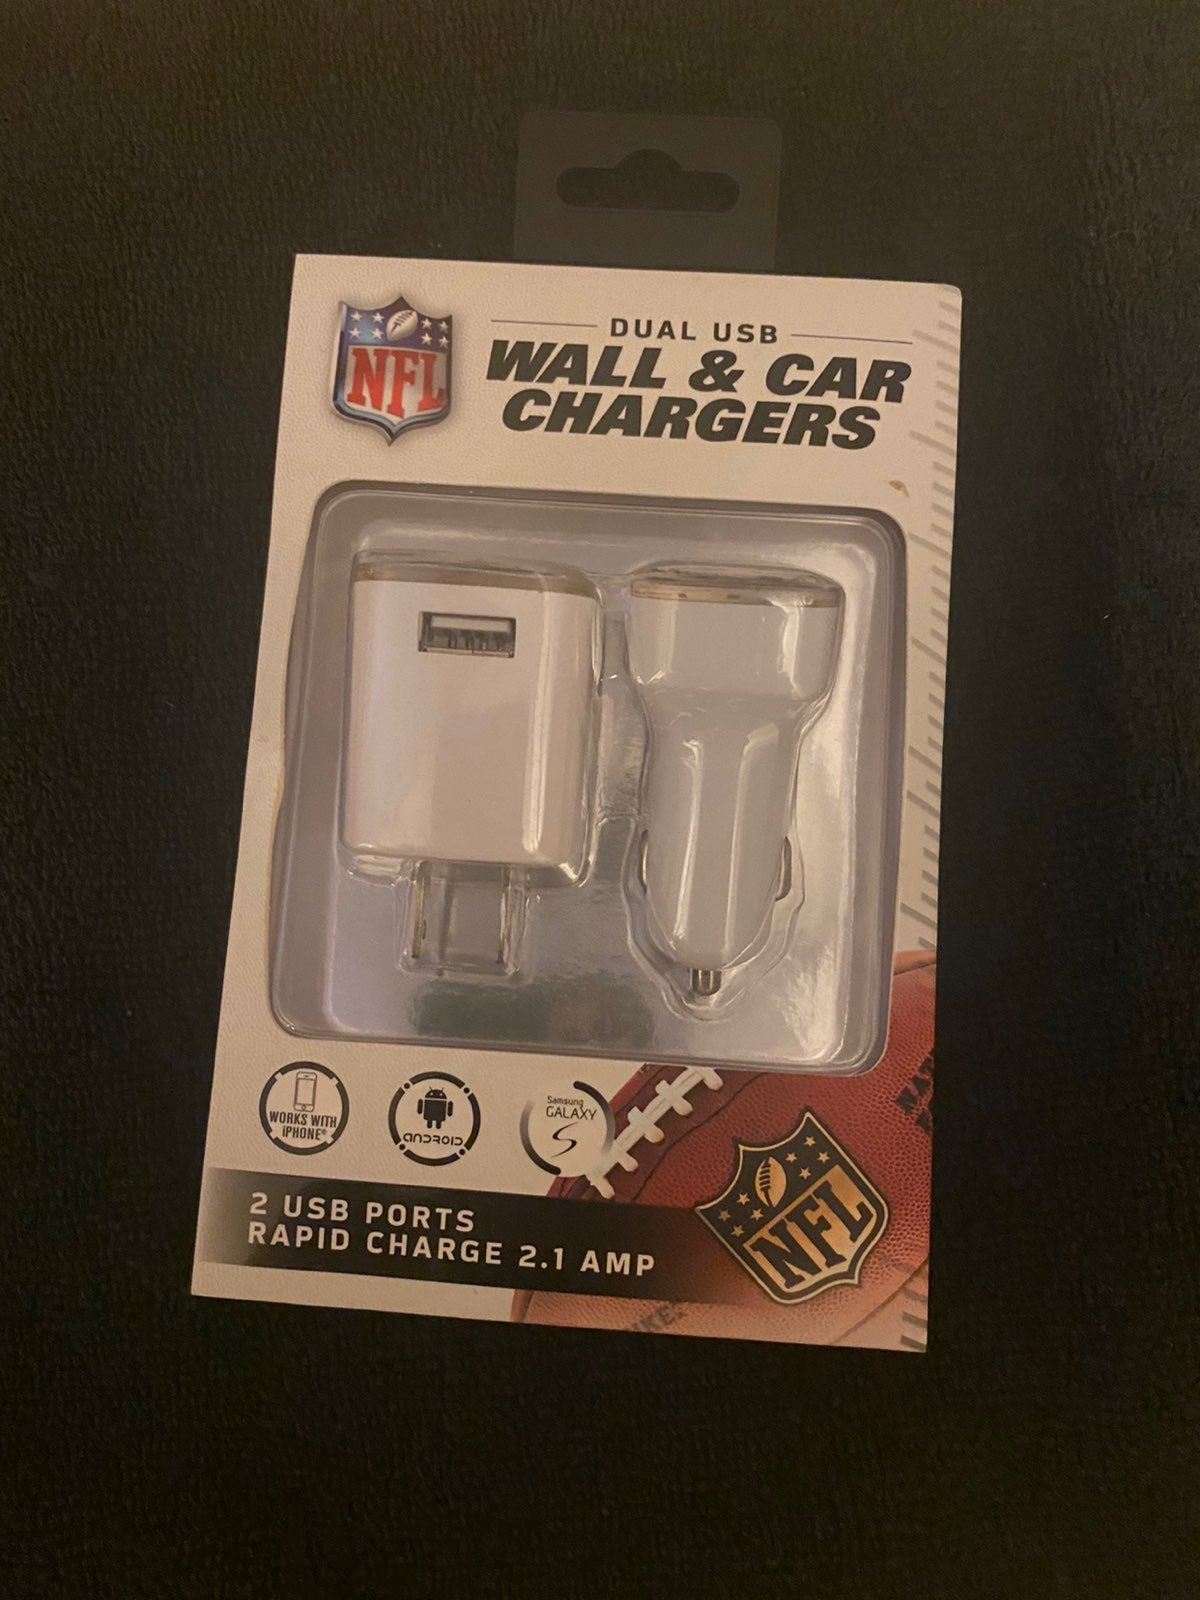 Wall & car charger